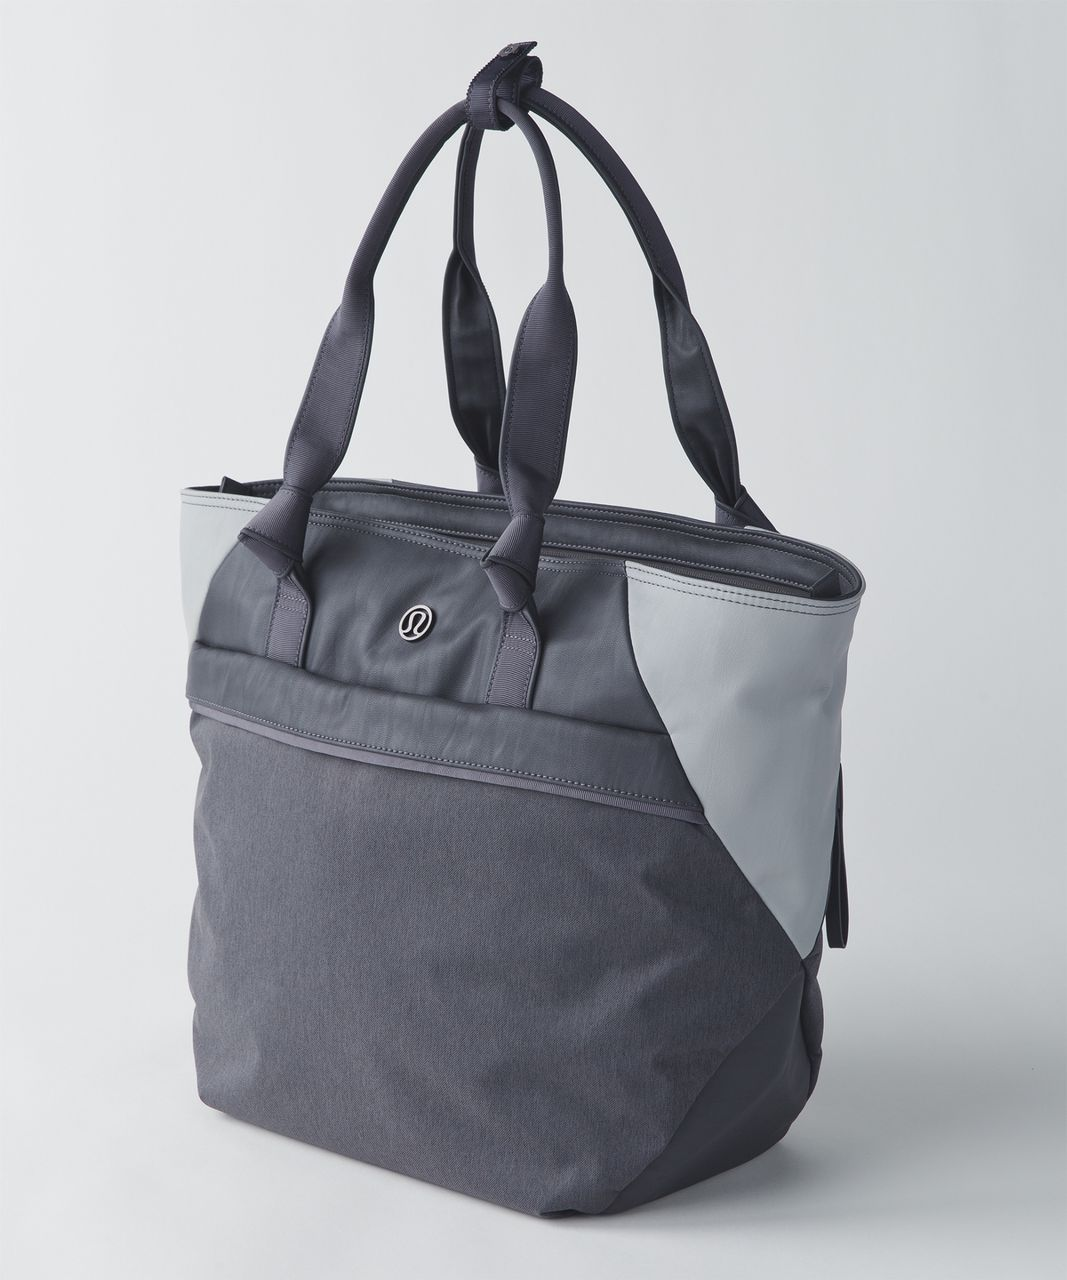 7485a8022b Lululemon Everything Bag - Soot Light / Seal Grey - lulu fanatics